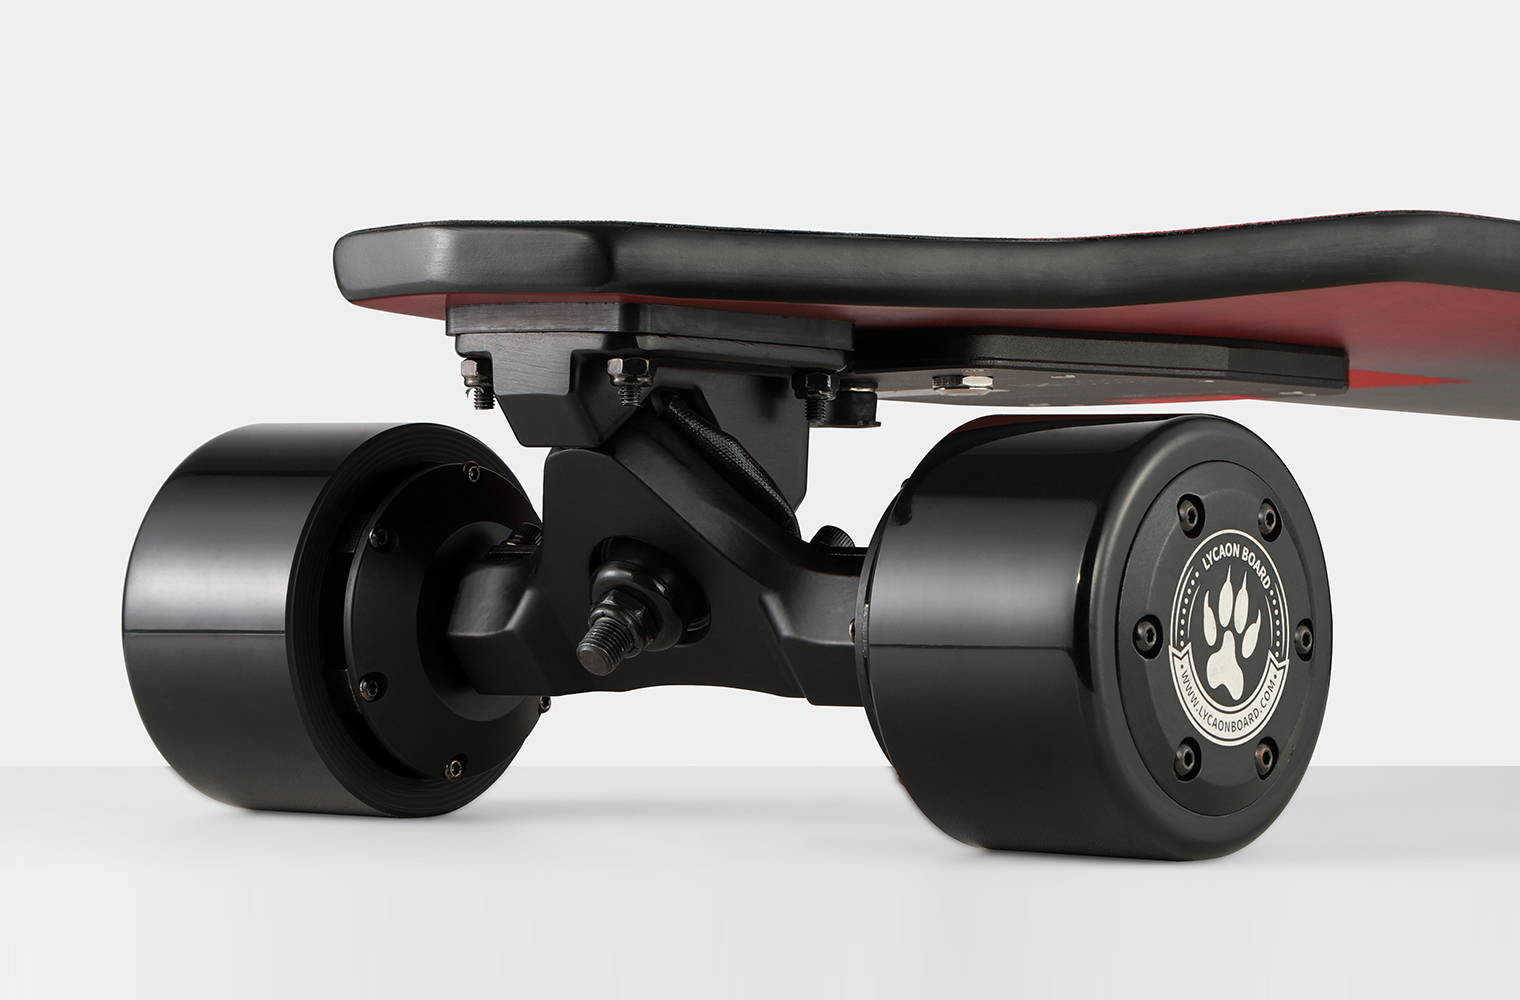 3 driving wheel of Lycaon Electric Skateboard